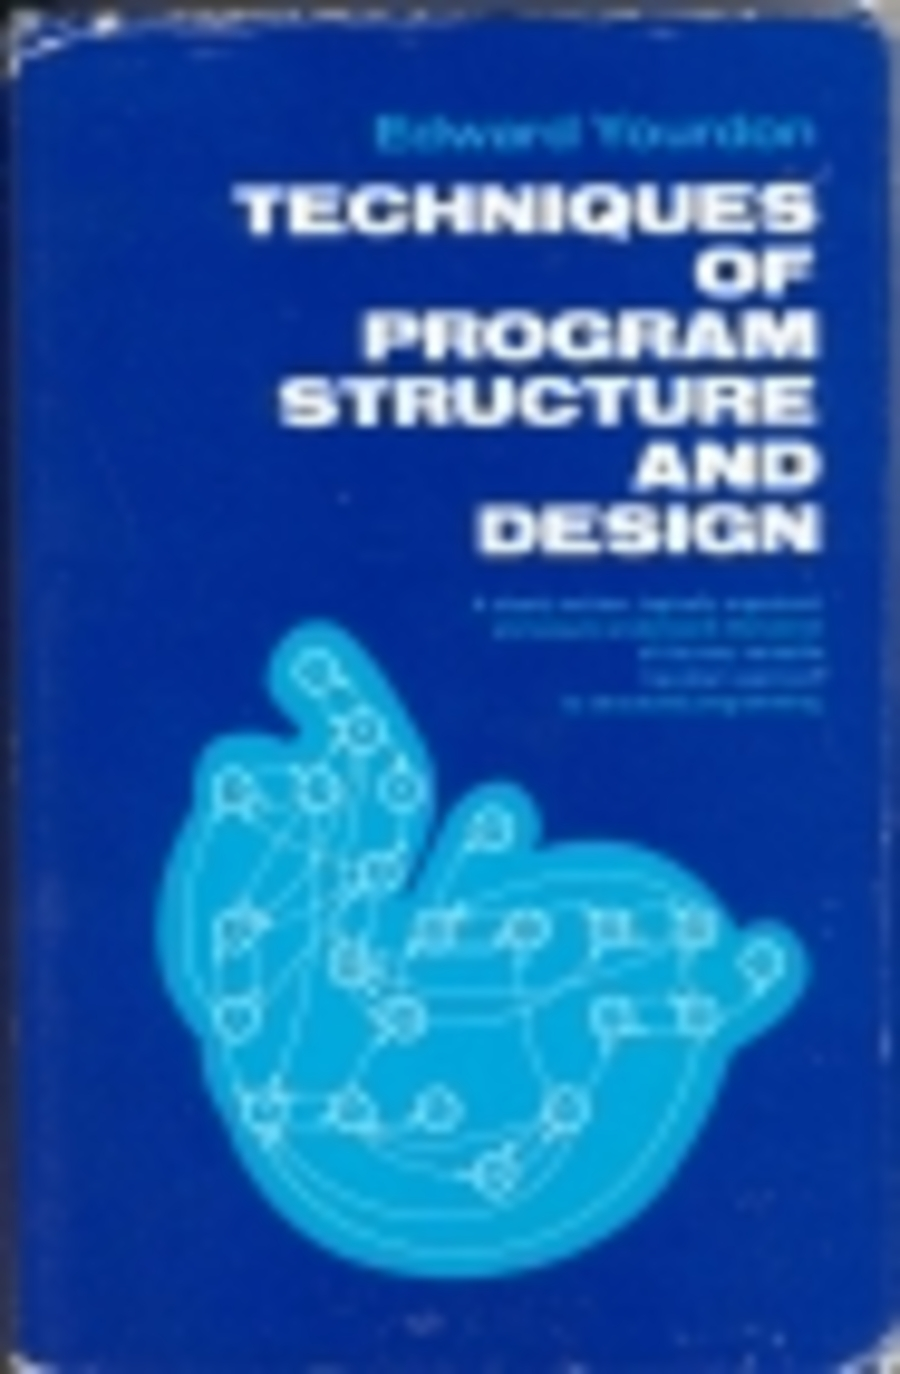 a study of structured analysis and design by larry l constantine and edward yourdon Structured design: fundamentals of a disciploine of computer program and systems design by edward yourdon , larry l constantine.